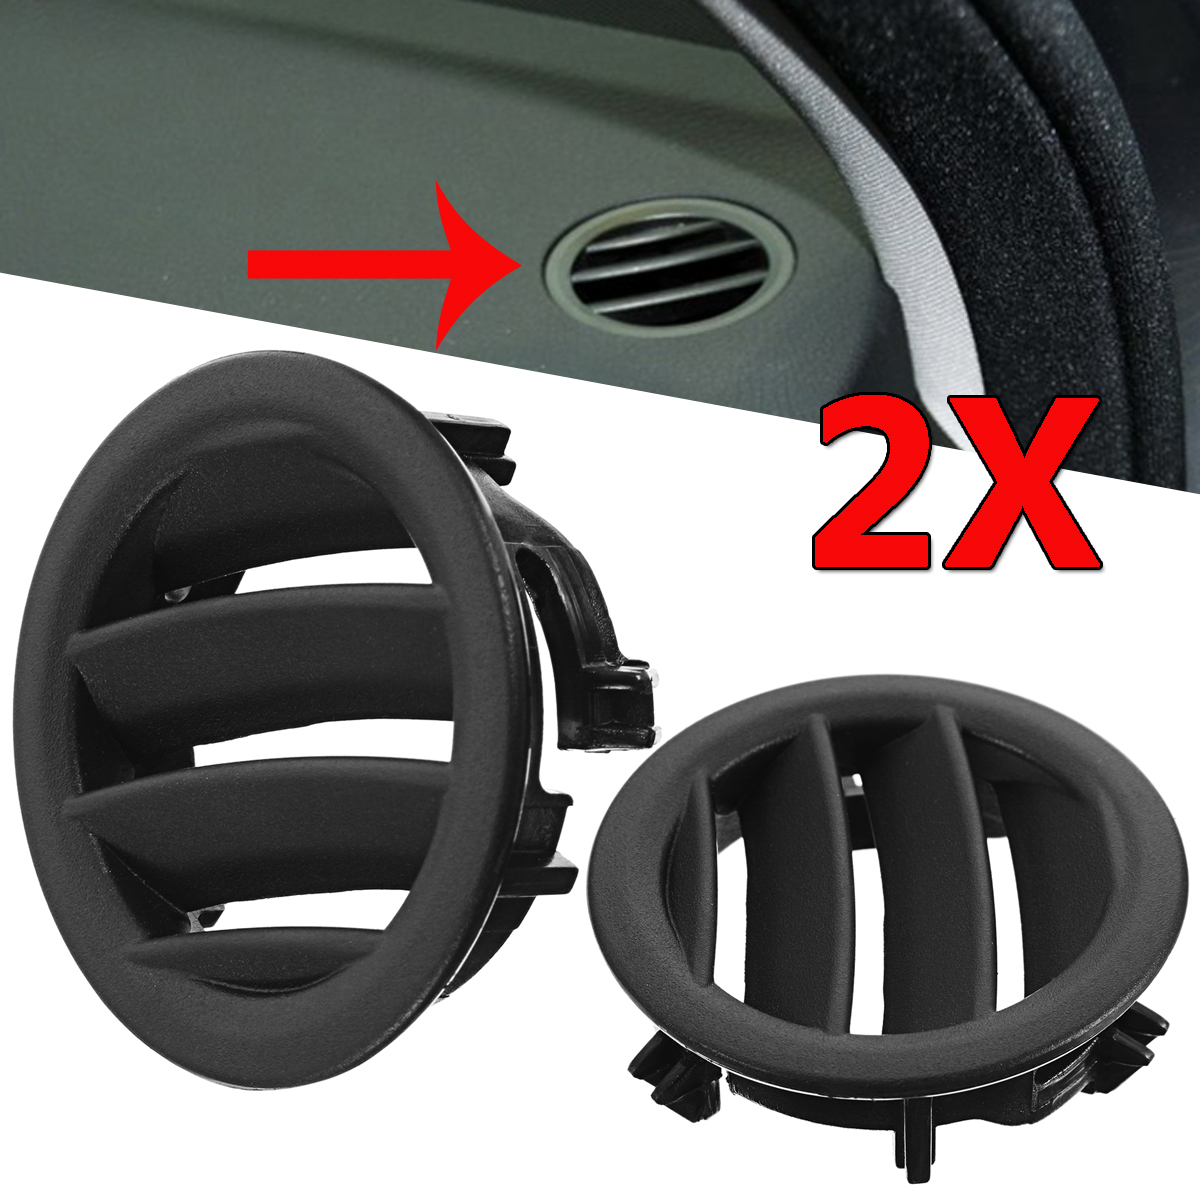 Left/Right Air Ac Vent For <font><b>Mercedes</b></font> W204 <font><b>C300</b></font> C350 C630 C Class 2008-2011 Air Conditioning Vents Trim Covers Black Car-styling image